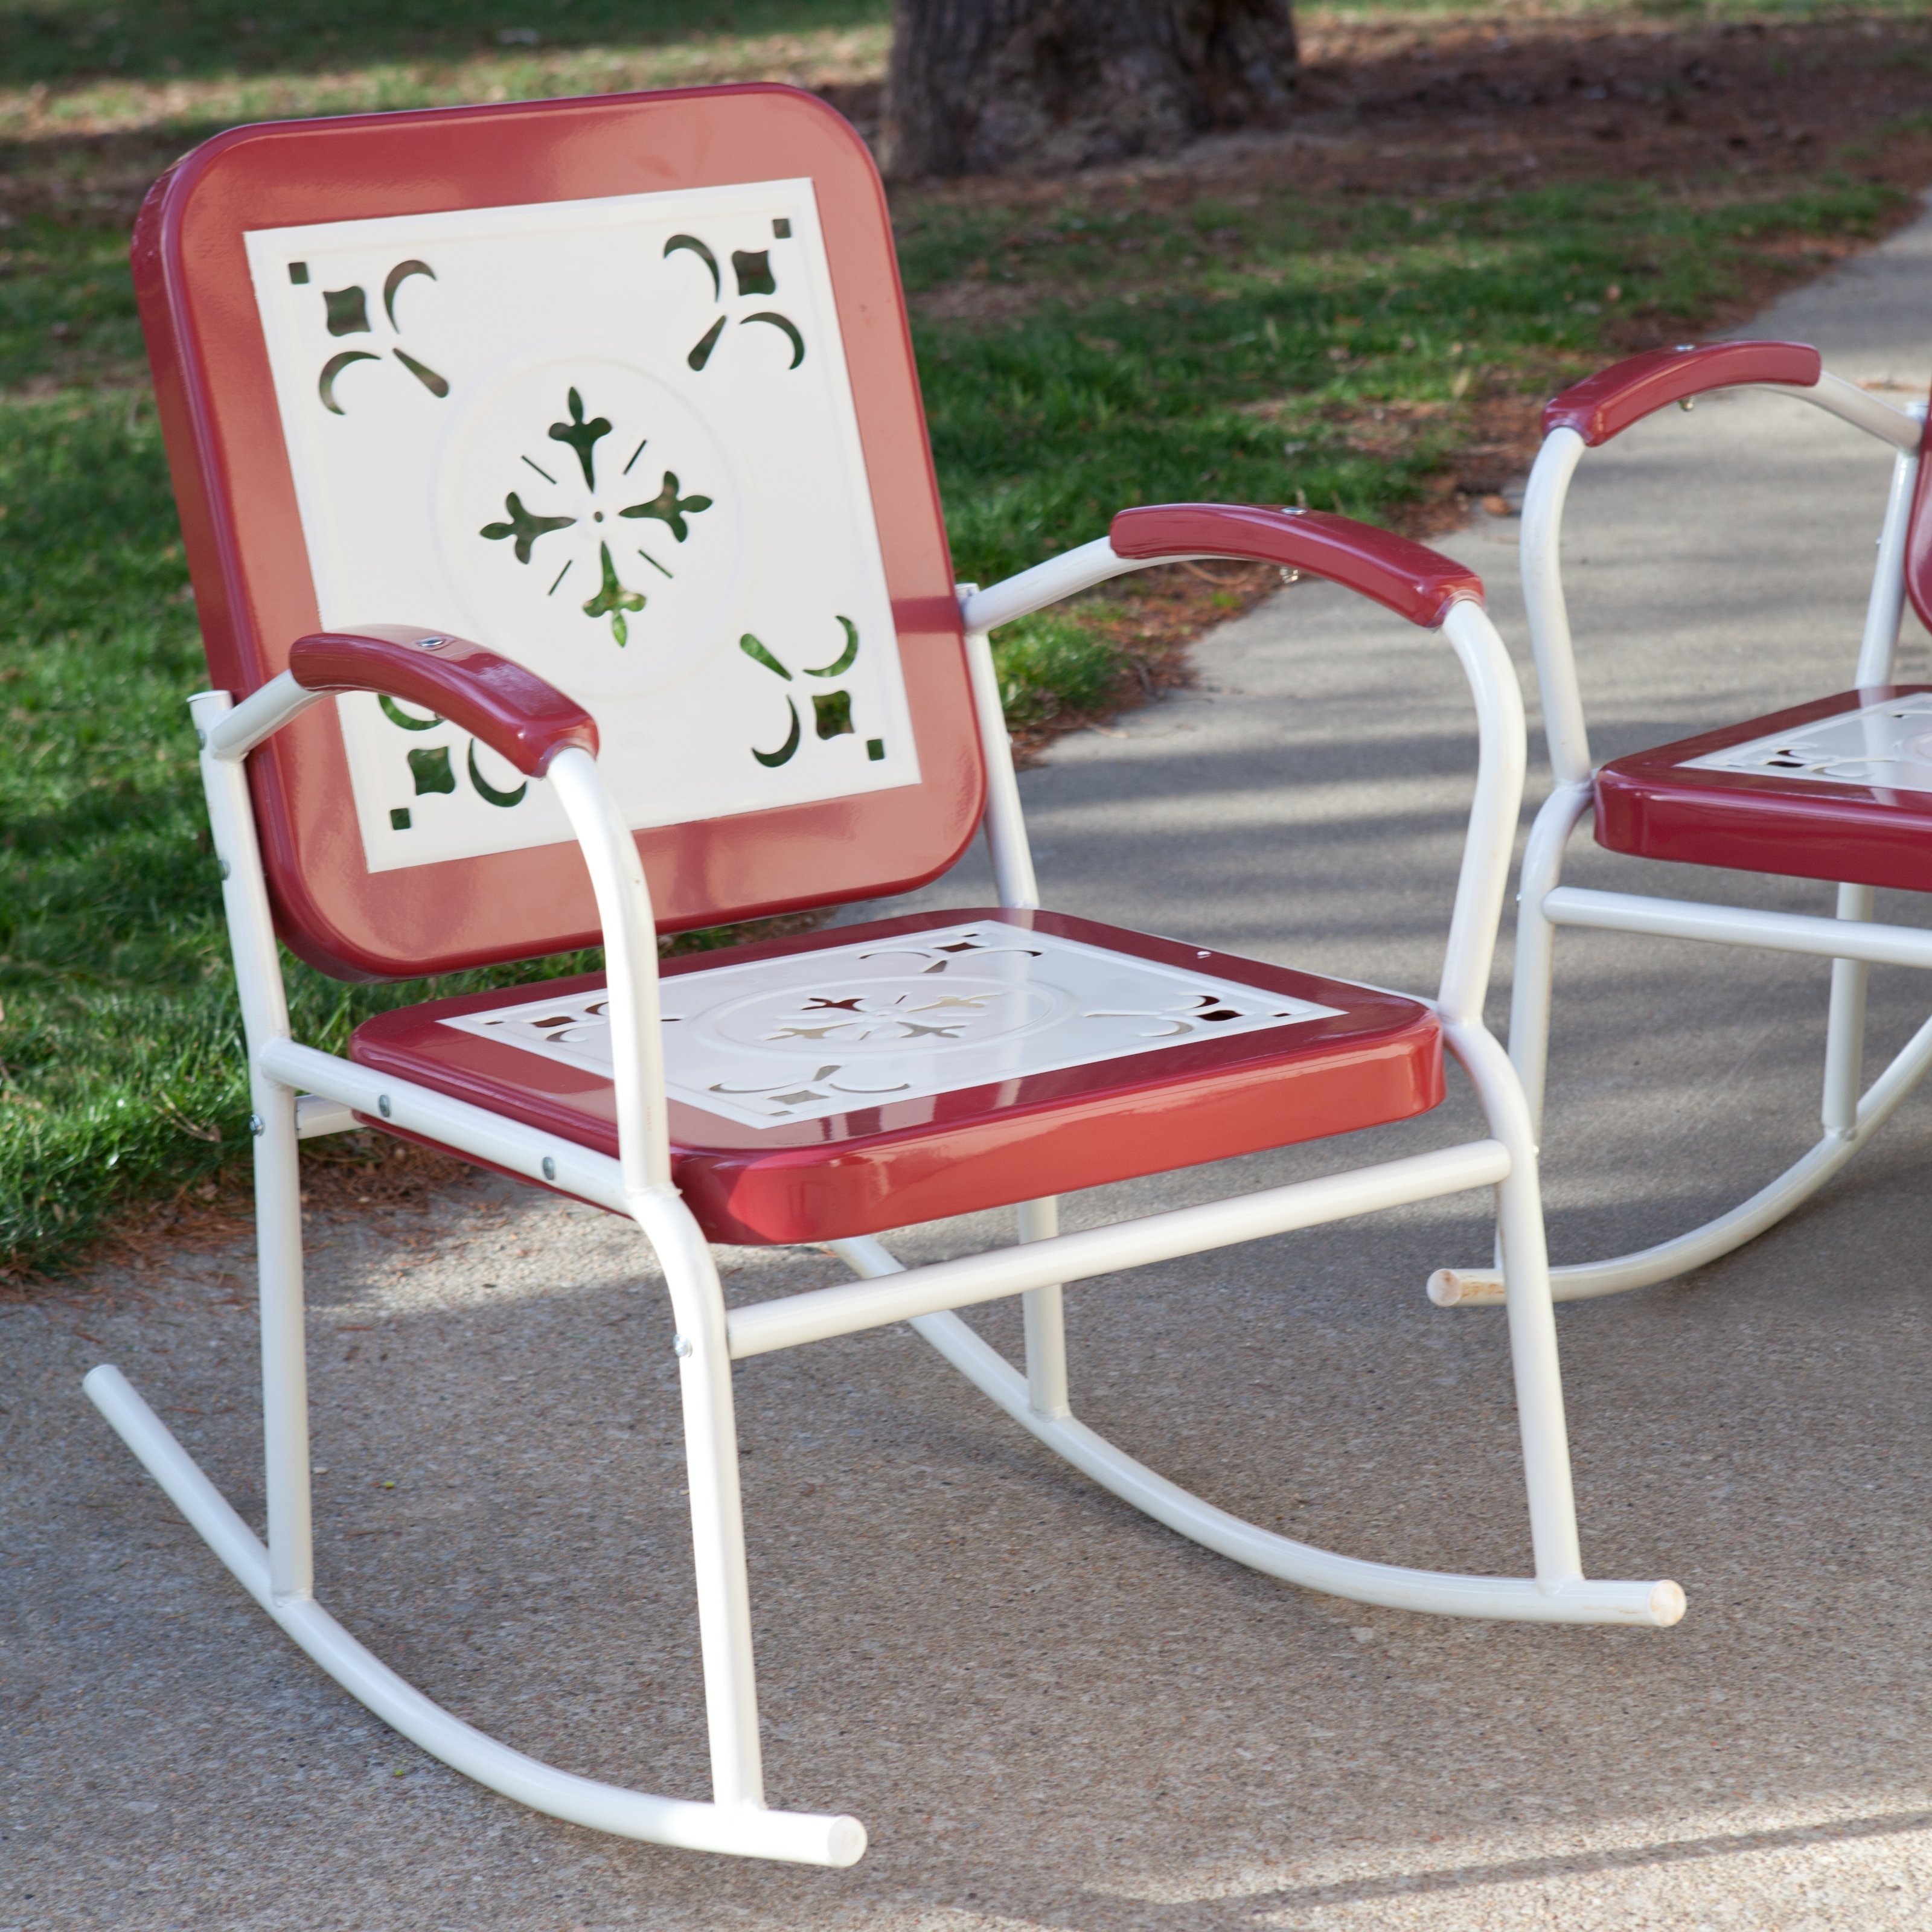 Most Recent Old Metal Outdoor Rocking Chairs – Outdoor Designs With Regard To Retro Outdoor Rocking Chairs (View 2 of 15)